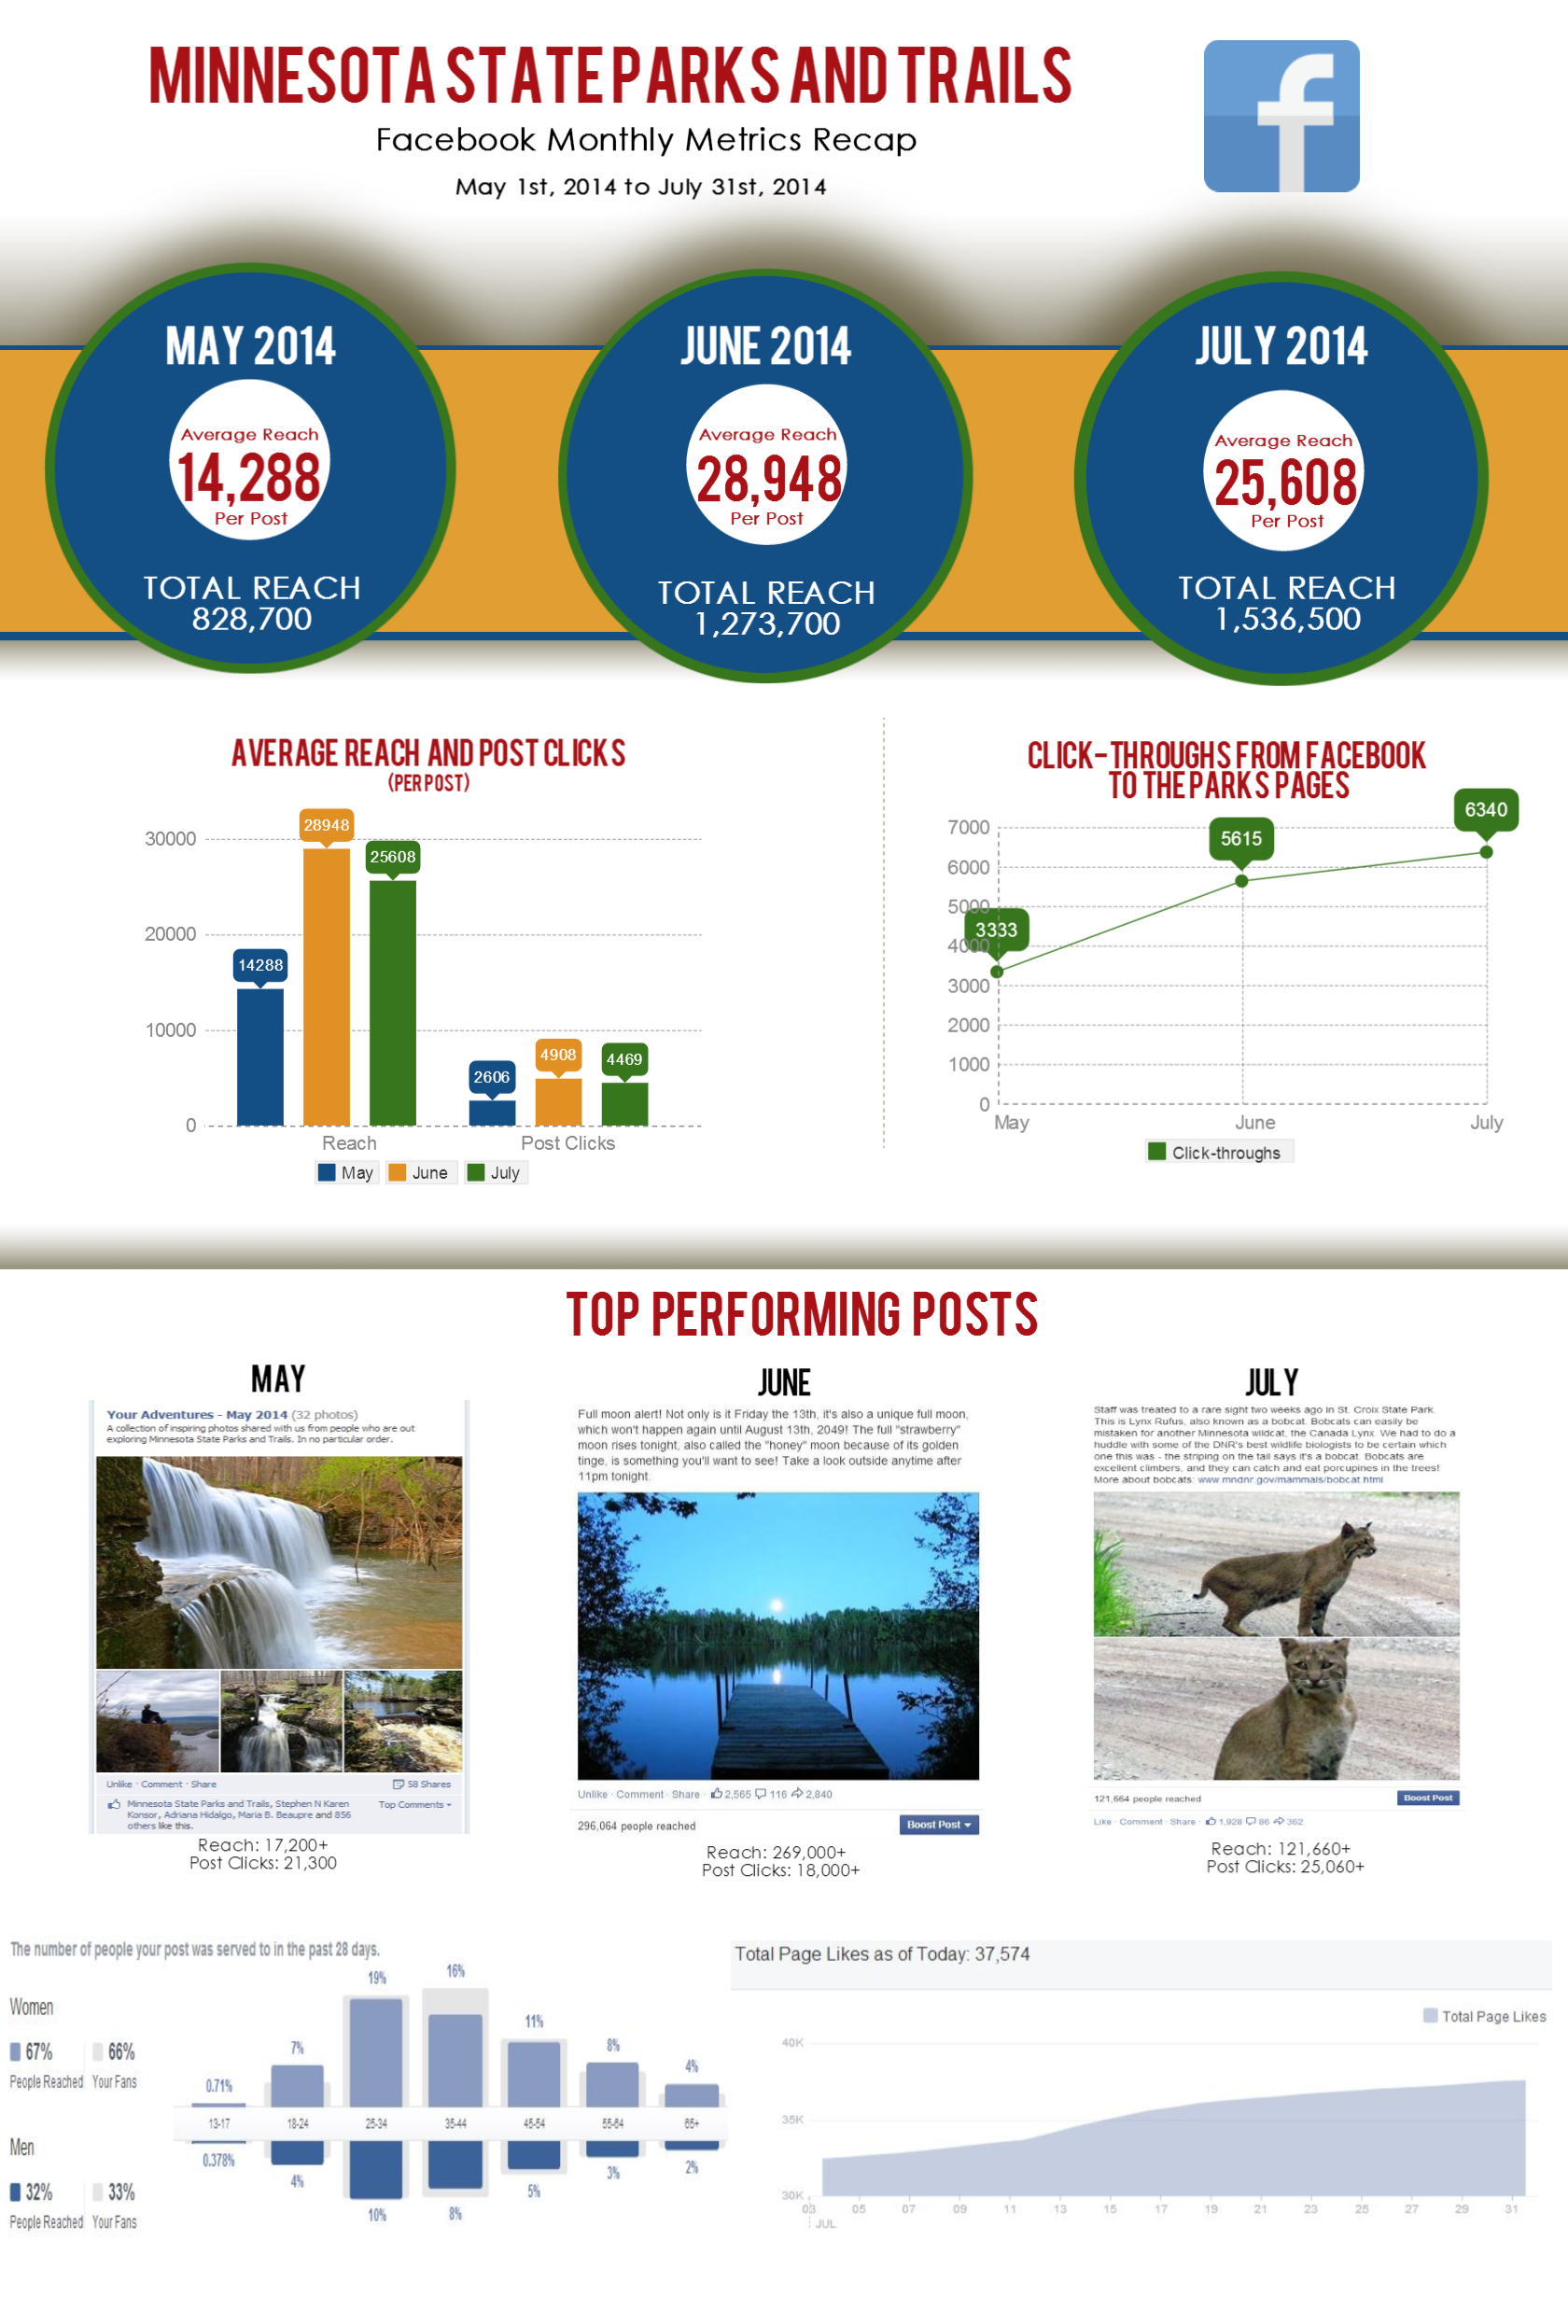 PAT-Facebook-Summary-May-July-2014.png